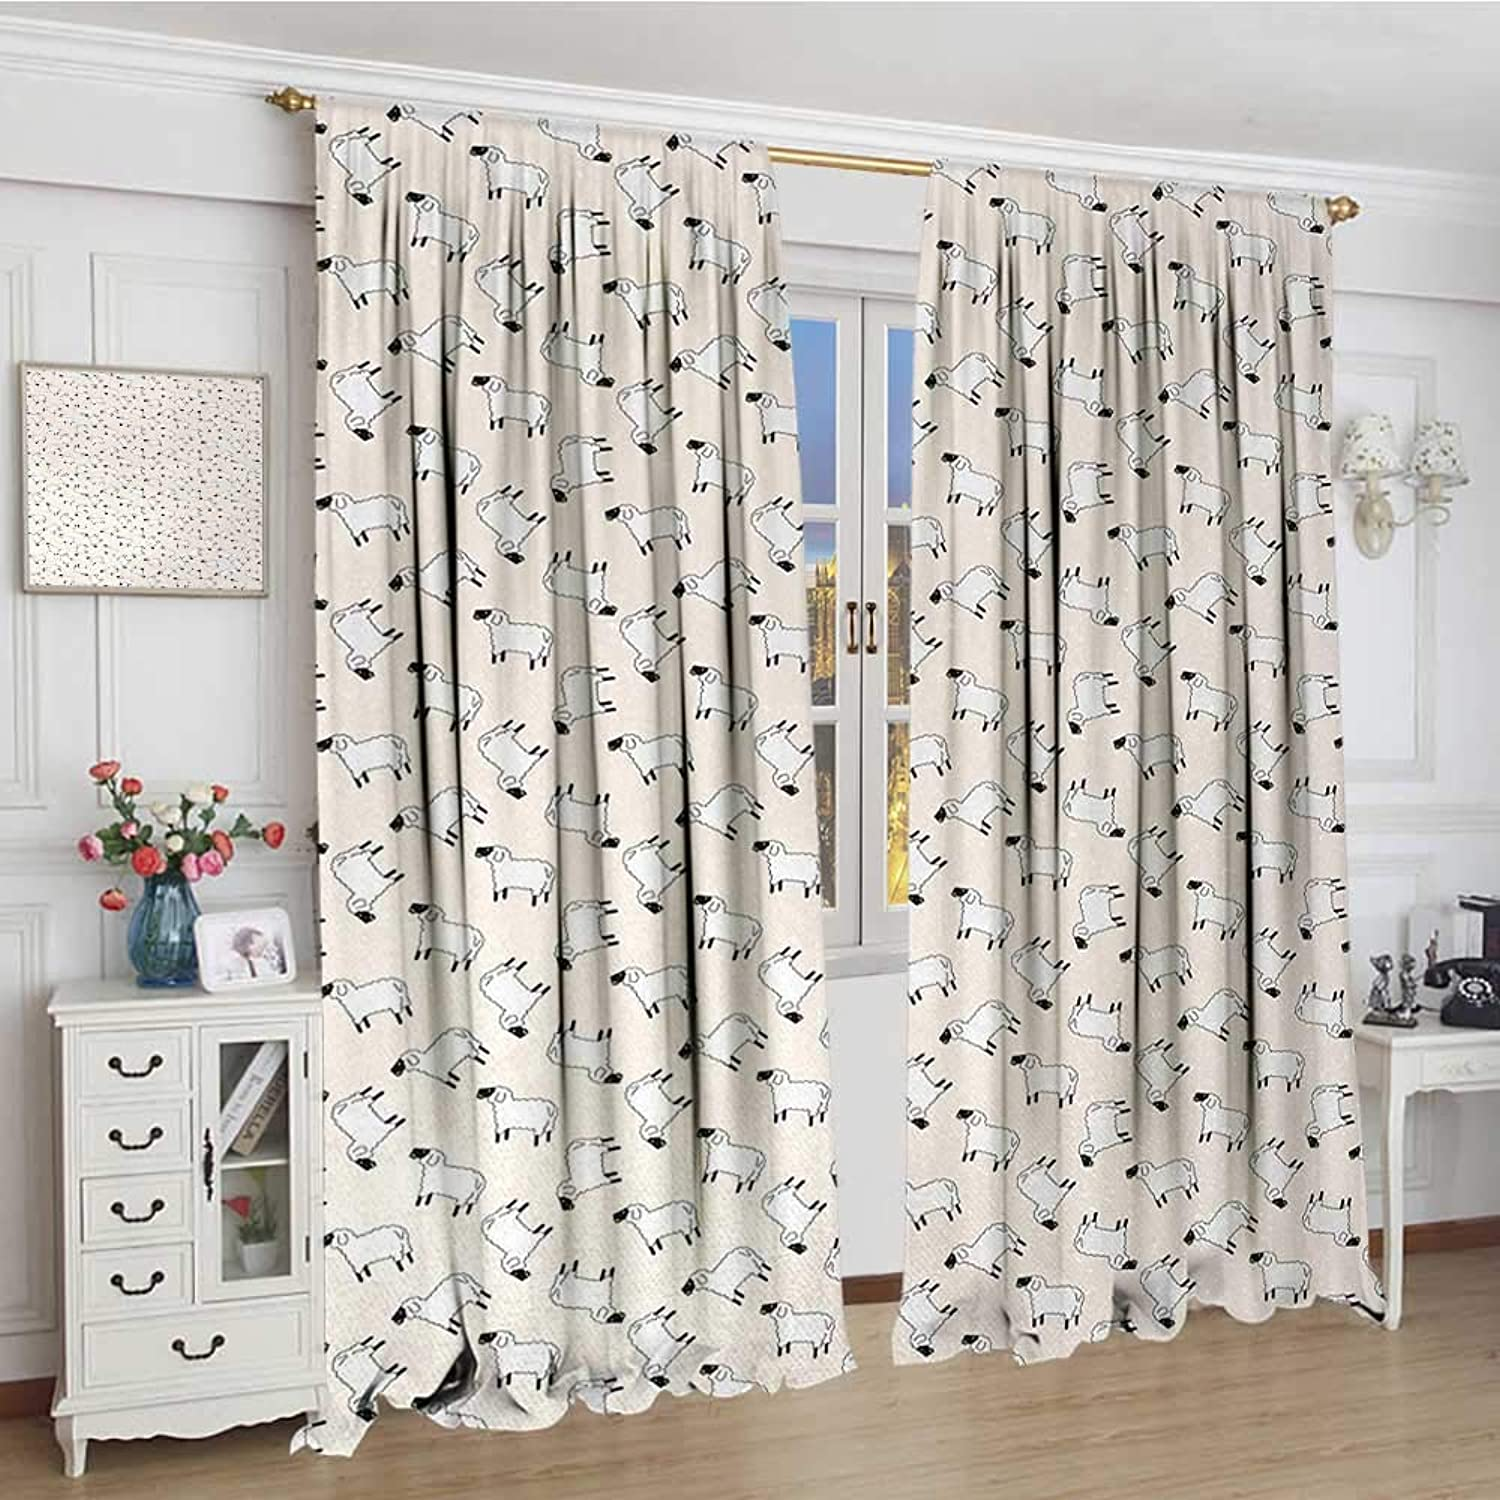 Smallbeefly Sheep Thermal Insulating Blackout Curtain Cartoon Style Funny Animals Chewing Green Weed Farm Wildlife Themed Pattern Patterned Drape Glass Door 72 x96  White Black Green